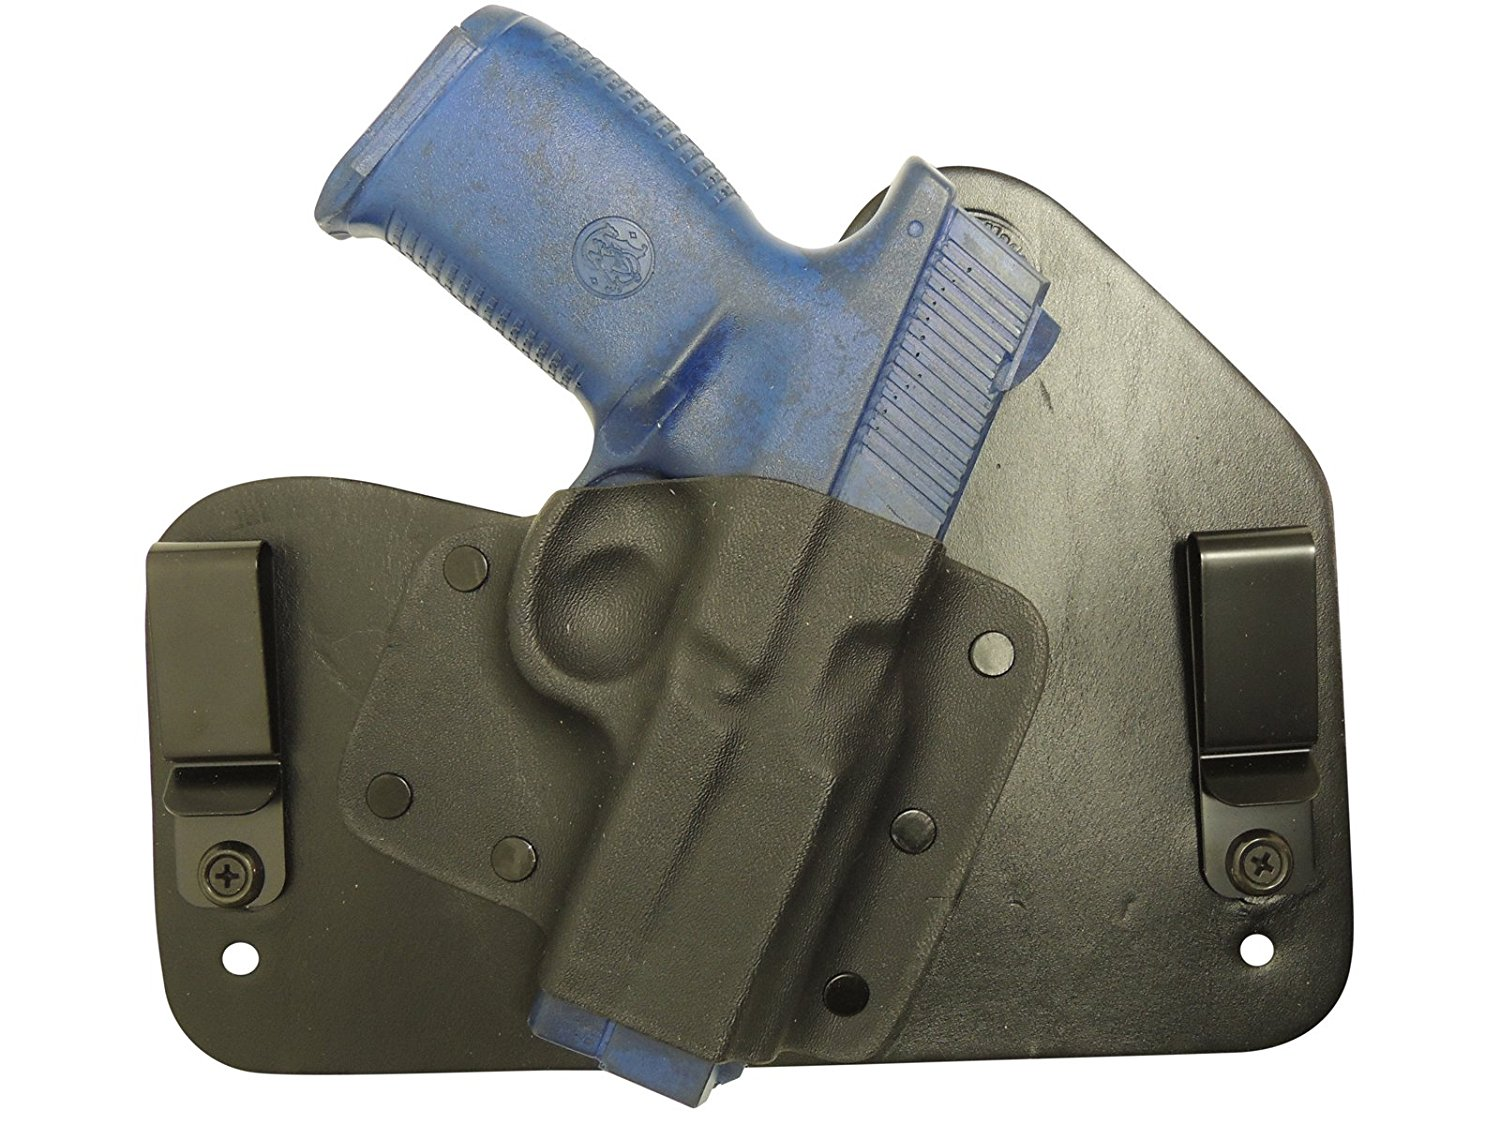 Everyday Holsters Smith & Wesson Sigma Hybrid Holster IWB Right Hand